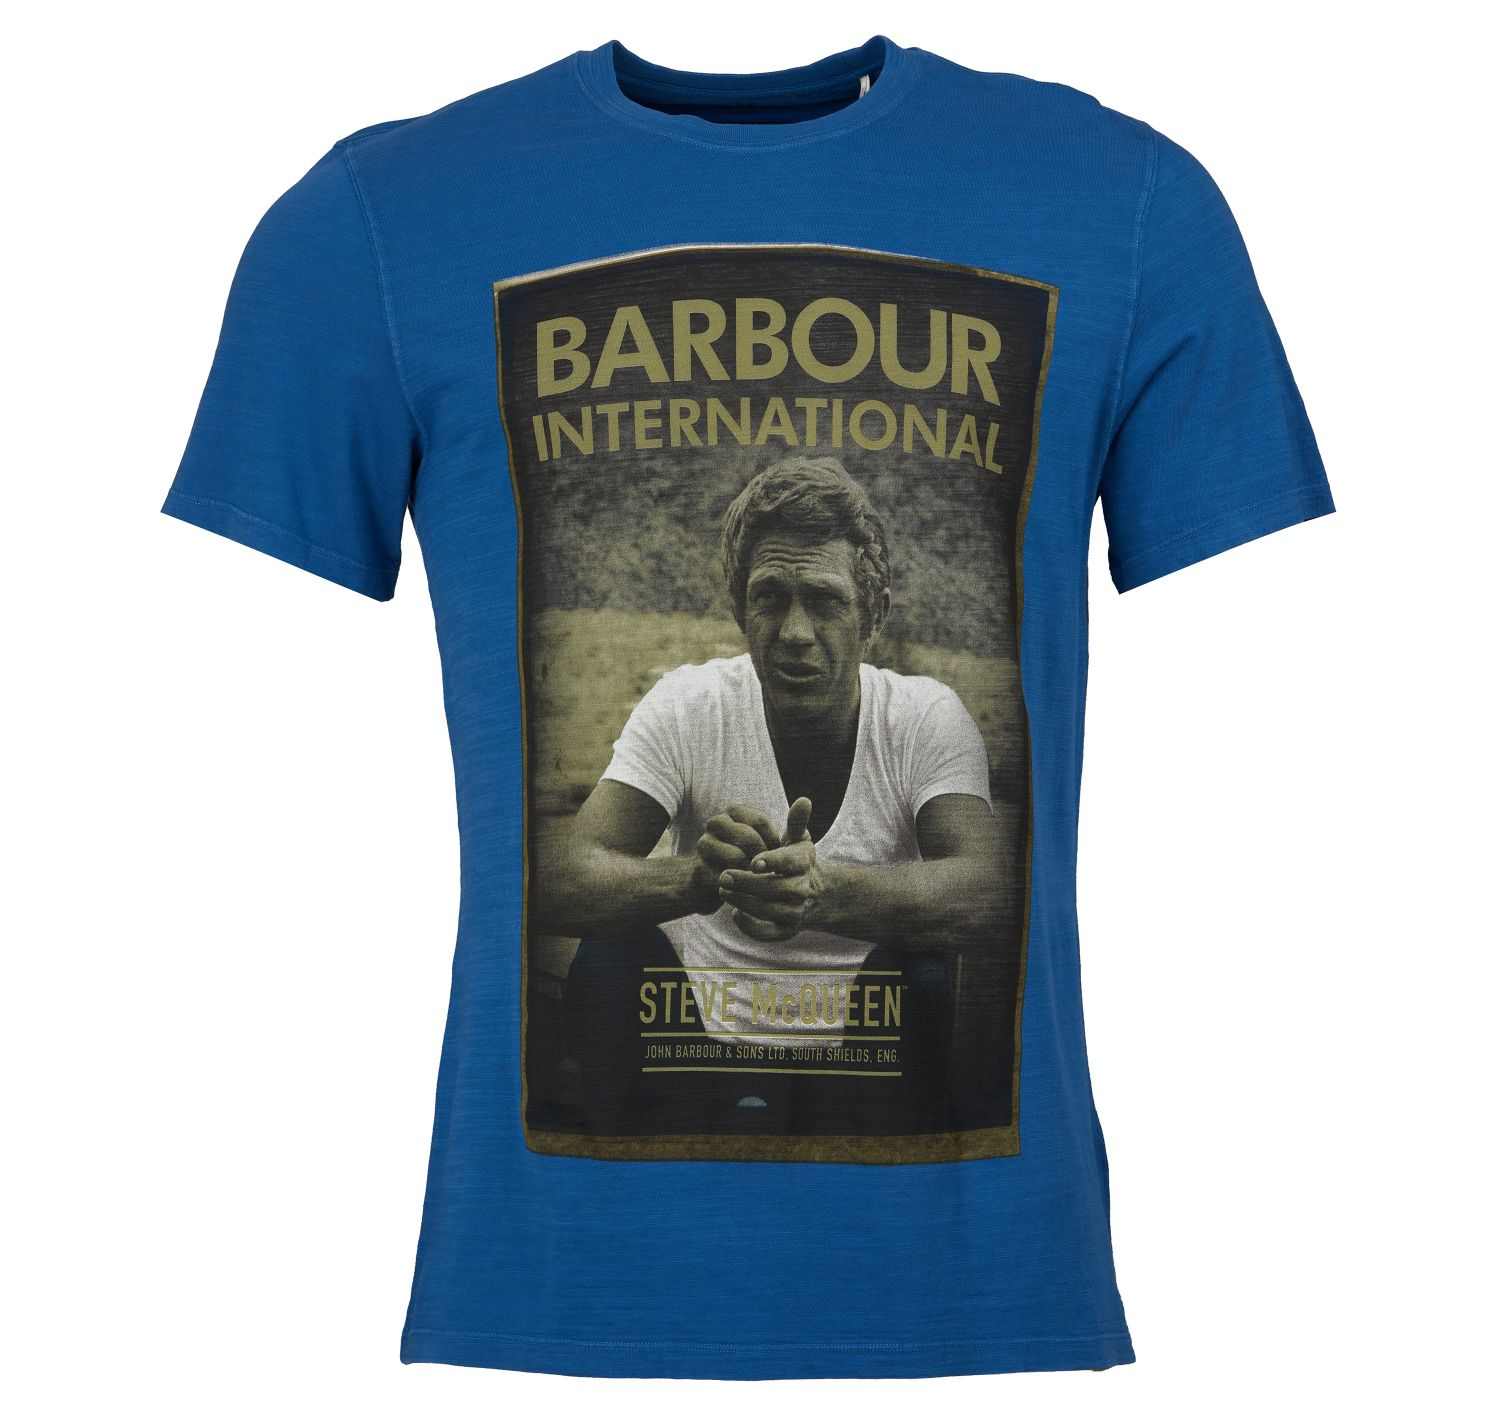 Barbour SMQ RelaxTee Shirt Blue Barbour International From Steve McQueen Collection